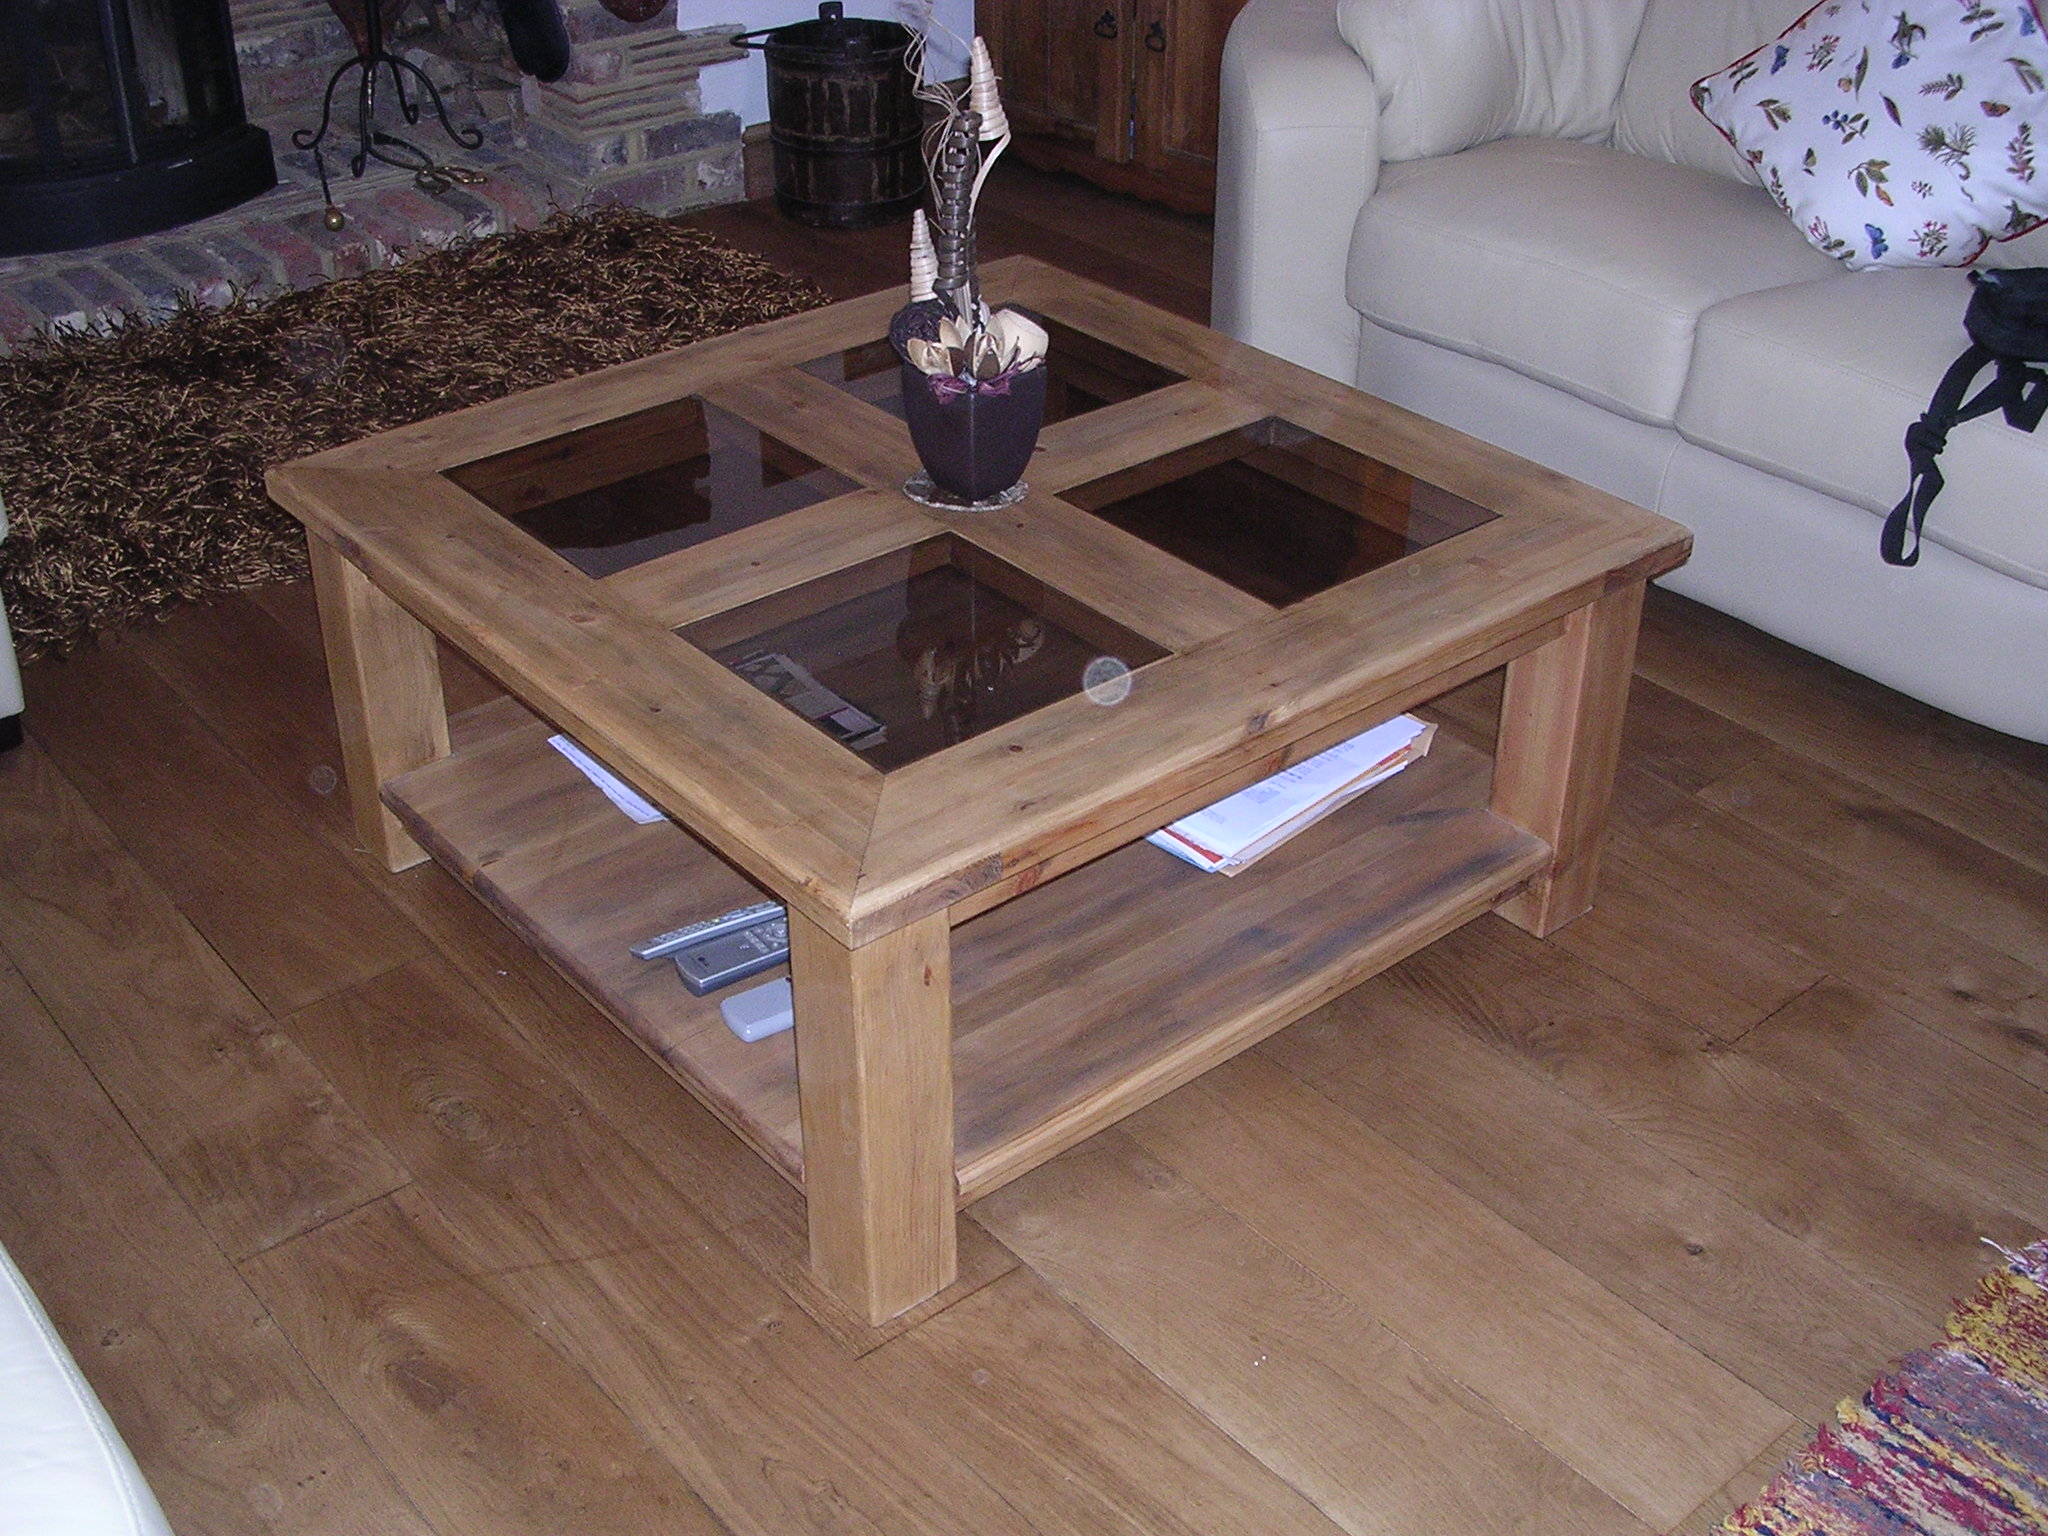 Wood Coffee Table With Glass Insert Rascalartsnyc